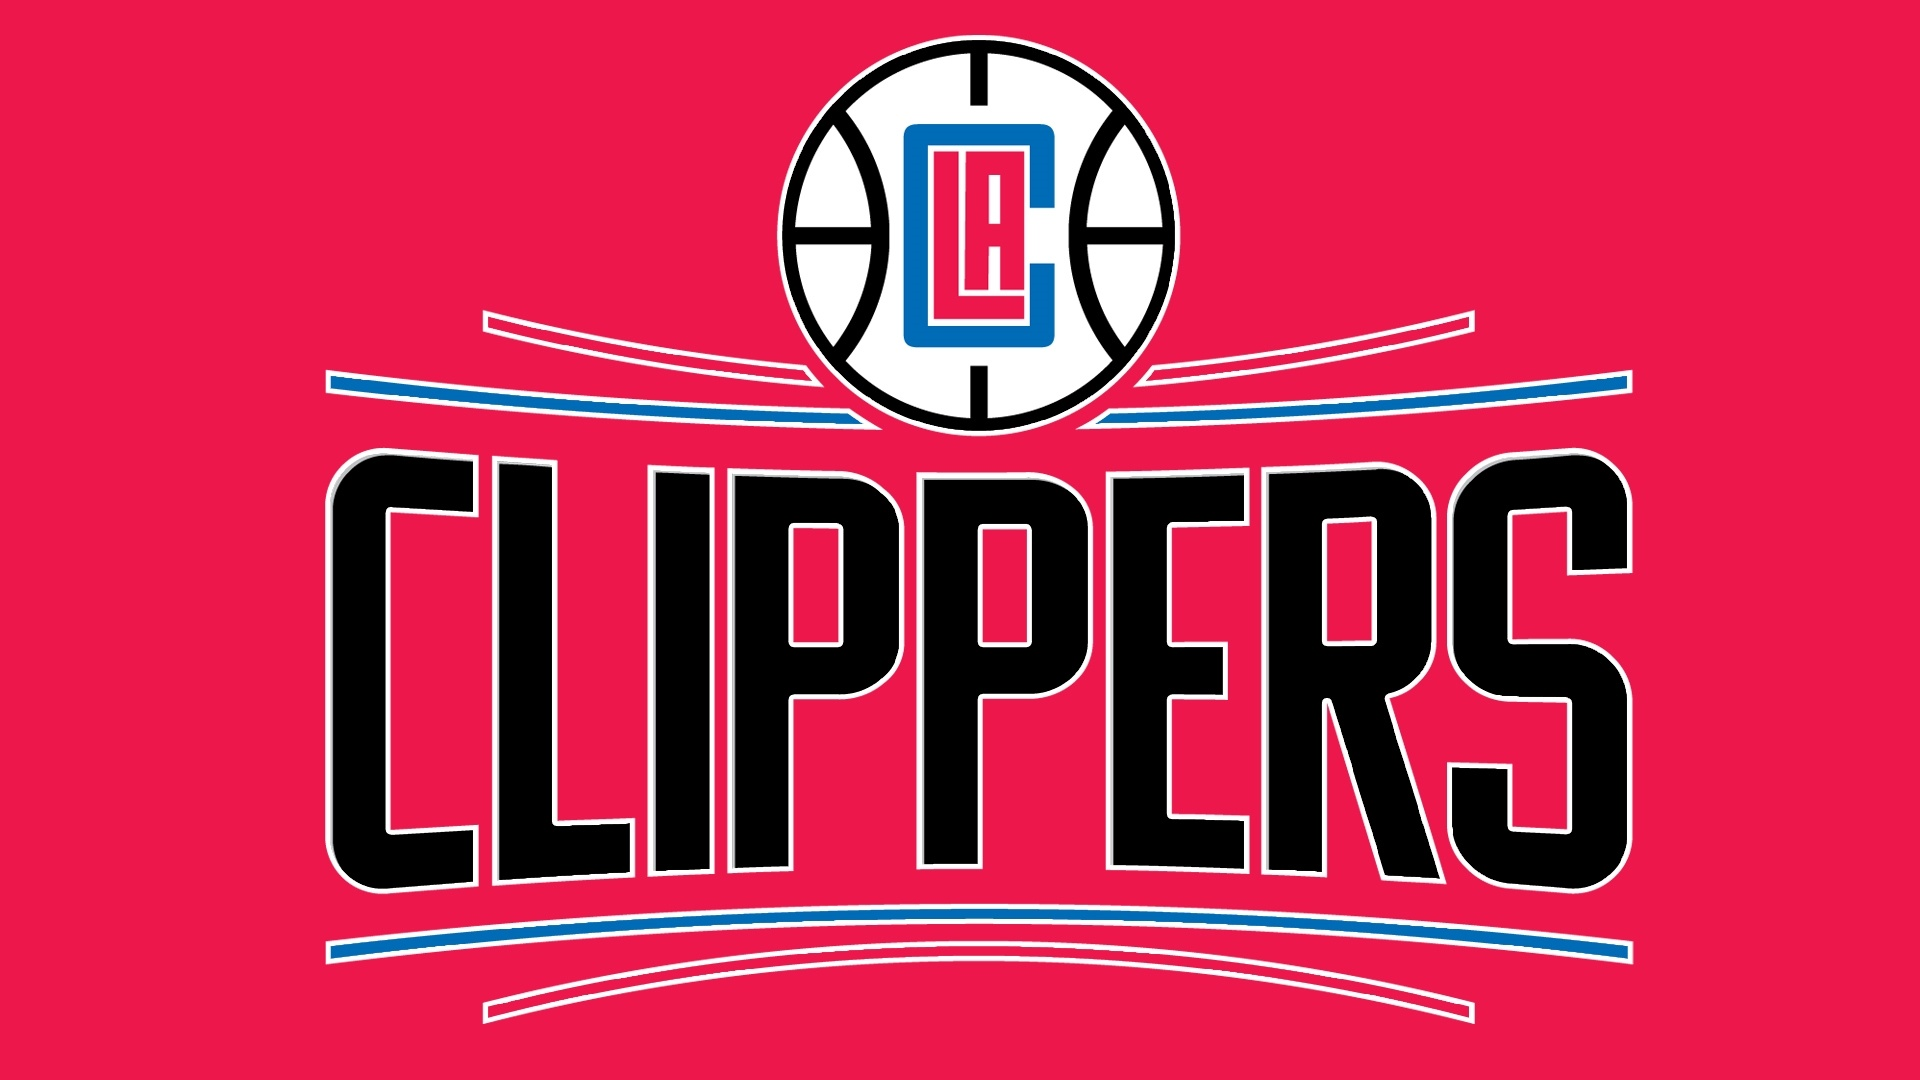 Los Angeles Clippers computer wallpaper